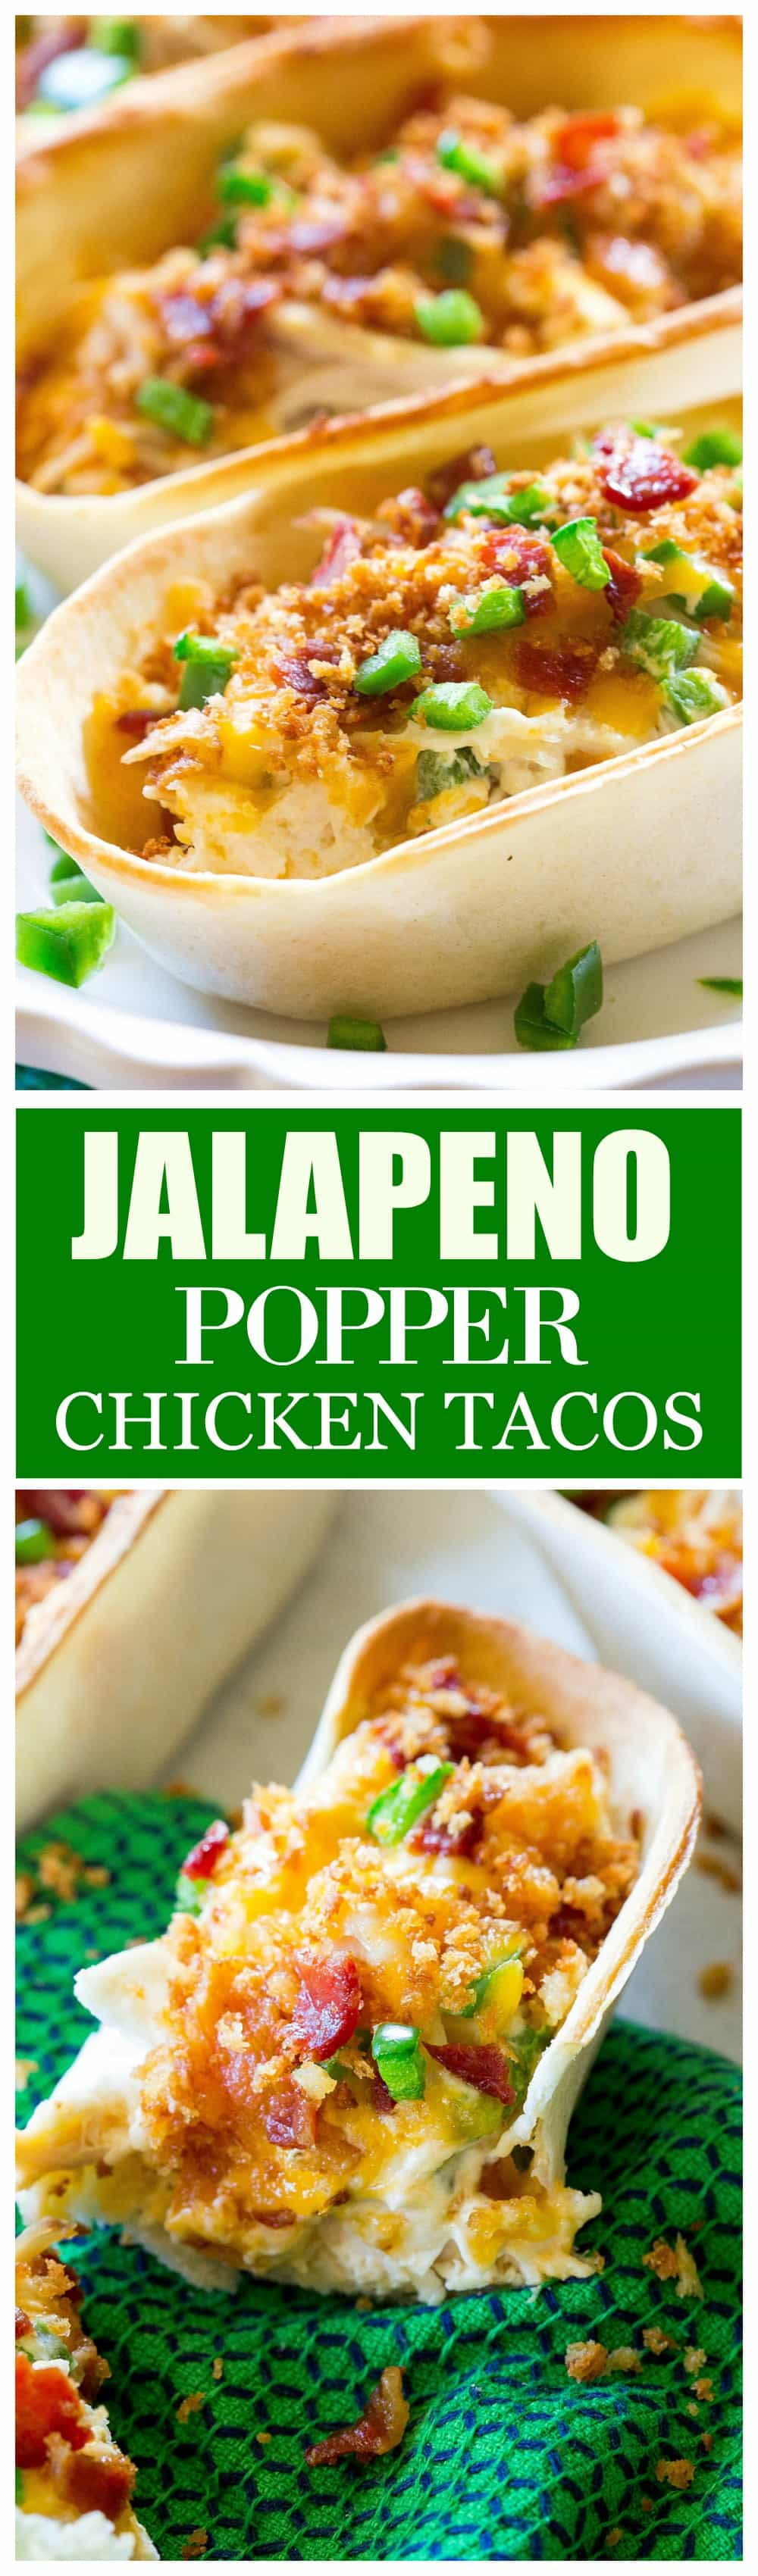 Jalapeno Popper Chicken Tacos - so good! Creamy, a little spicy, and with crunchy Panko topping on top! #jalapeno #popper #chicken #tacos #recipe #dinner #mexican